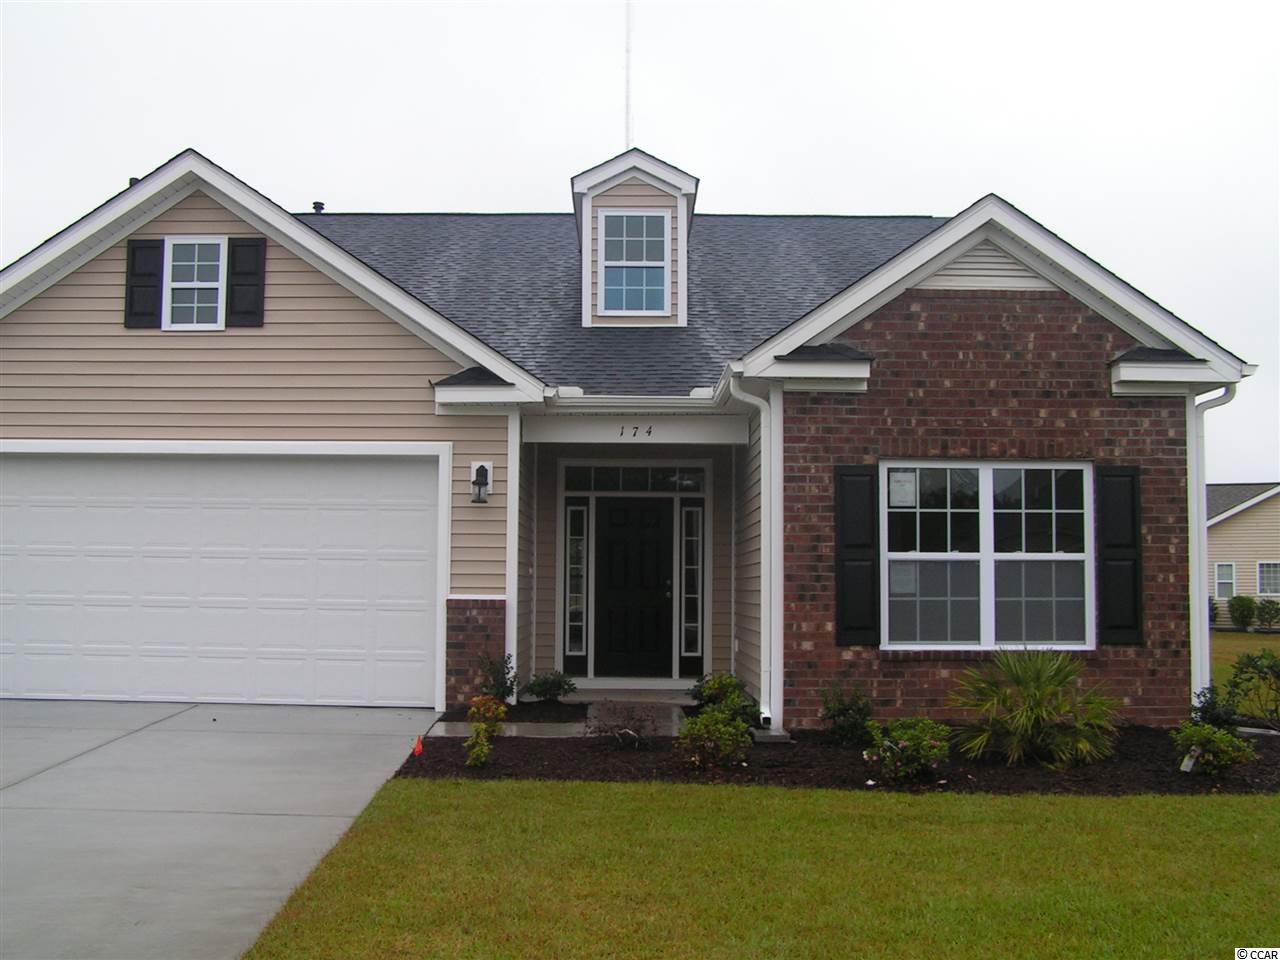 Single Family Home for Sale at 174 Glenmoor Drive 174 Glenmoor Drive Conway, South Carolina 29526 United States